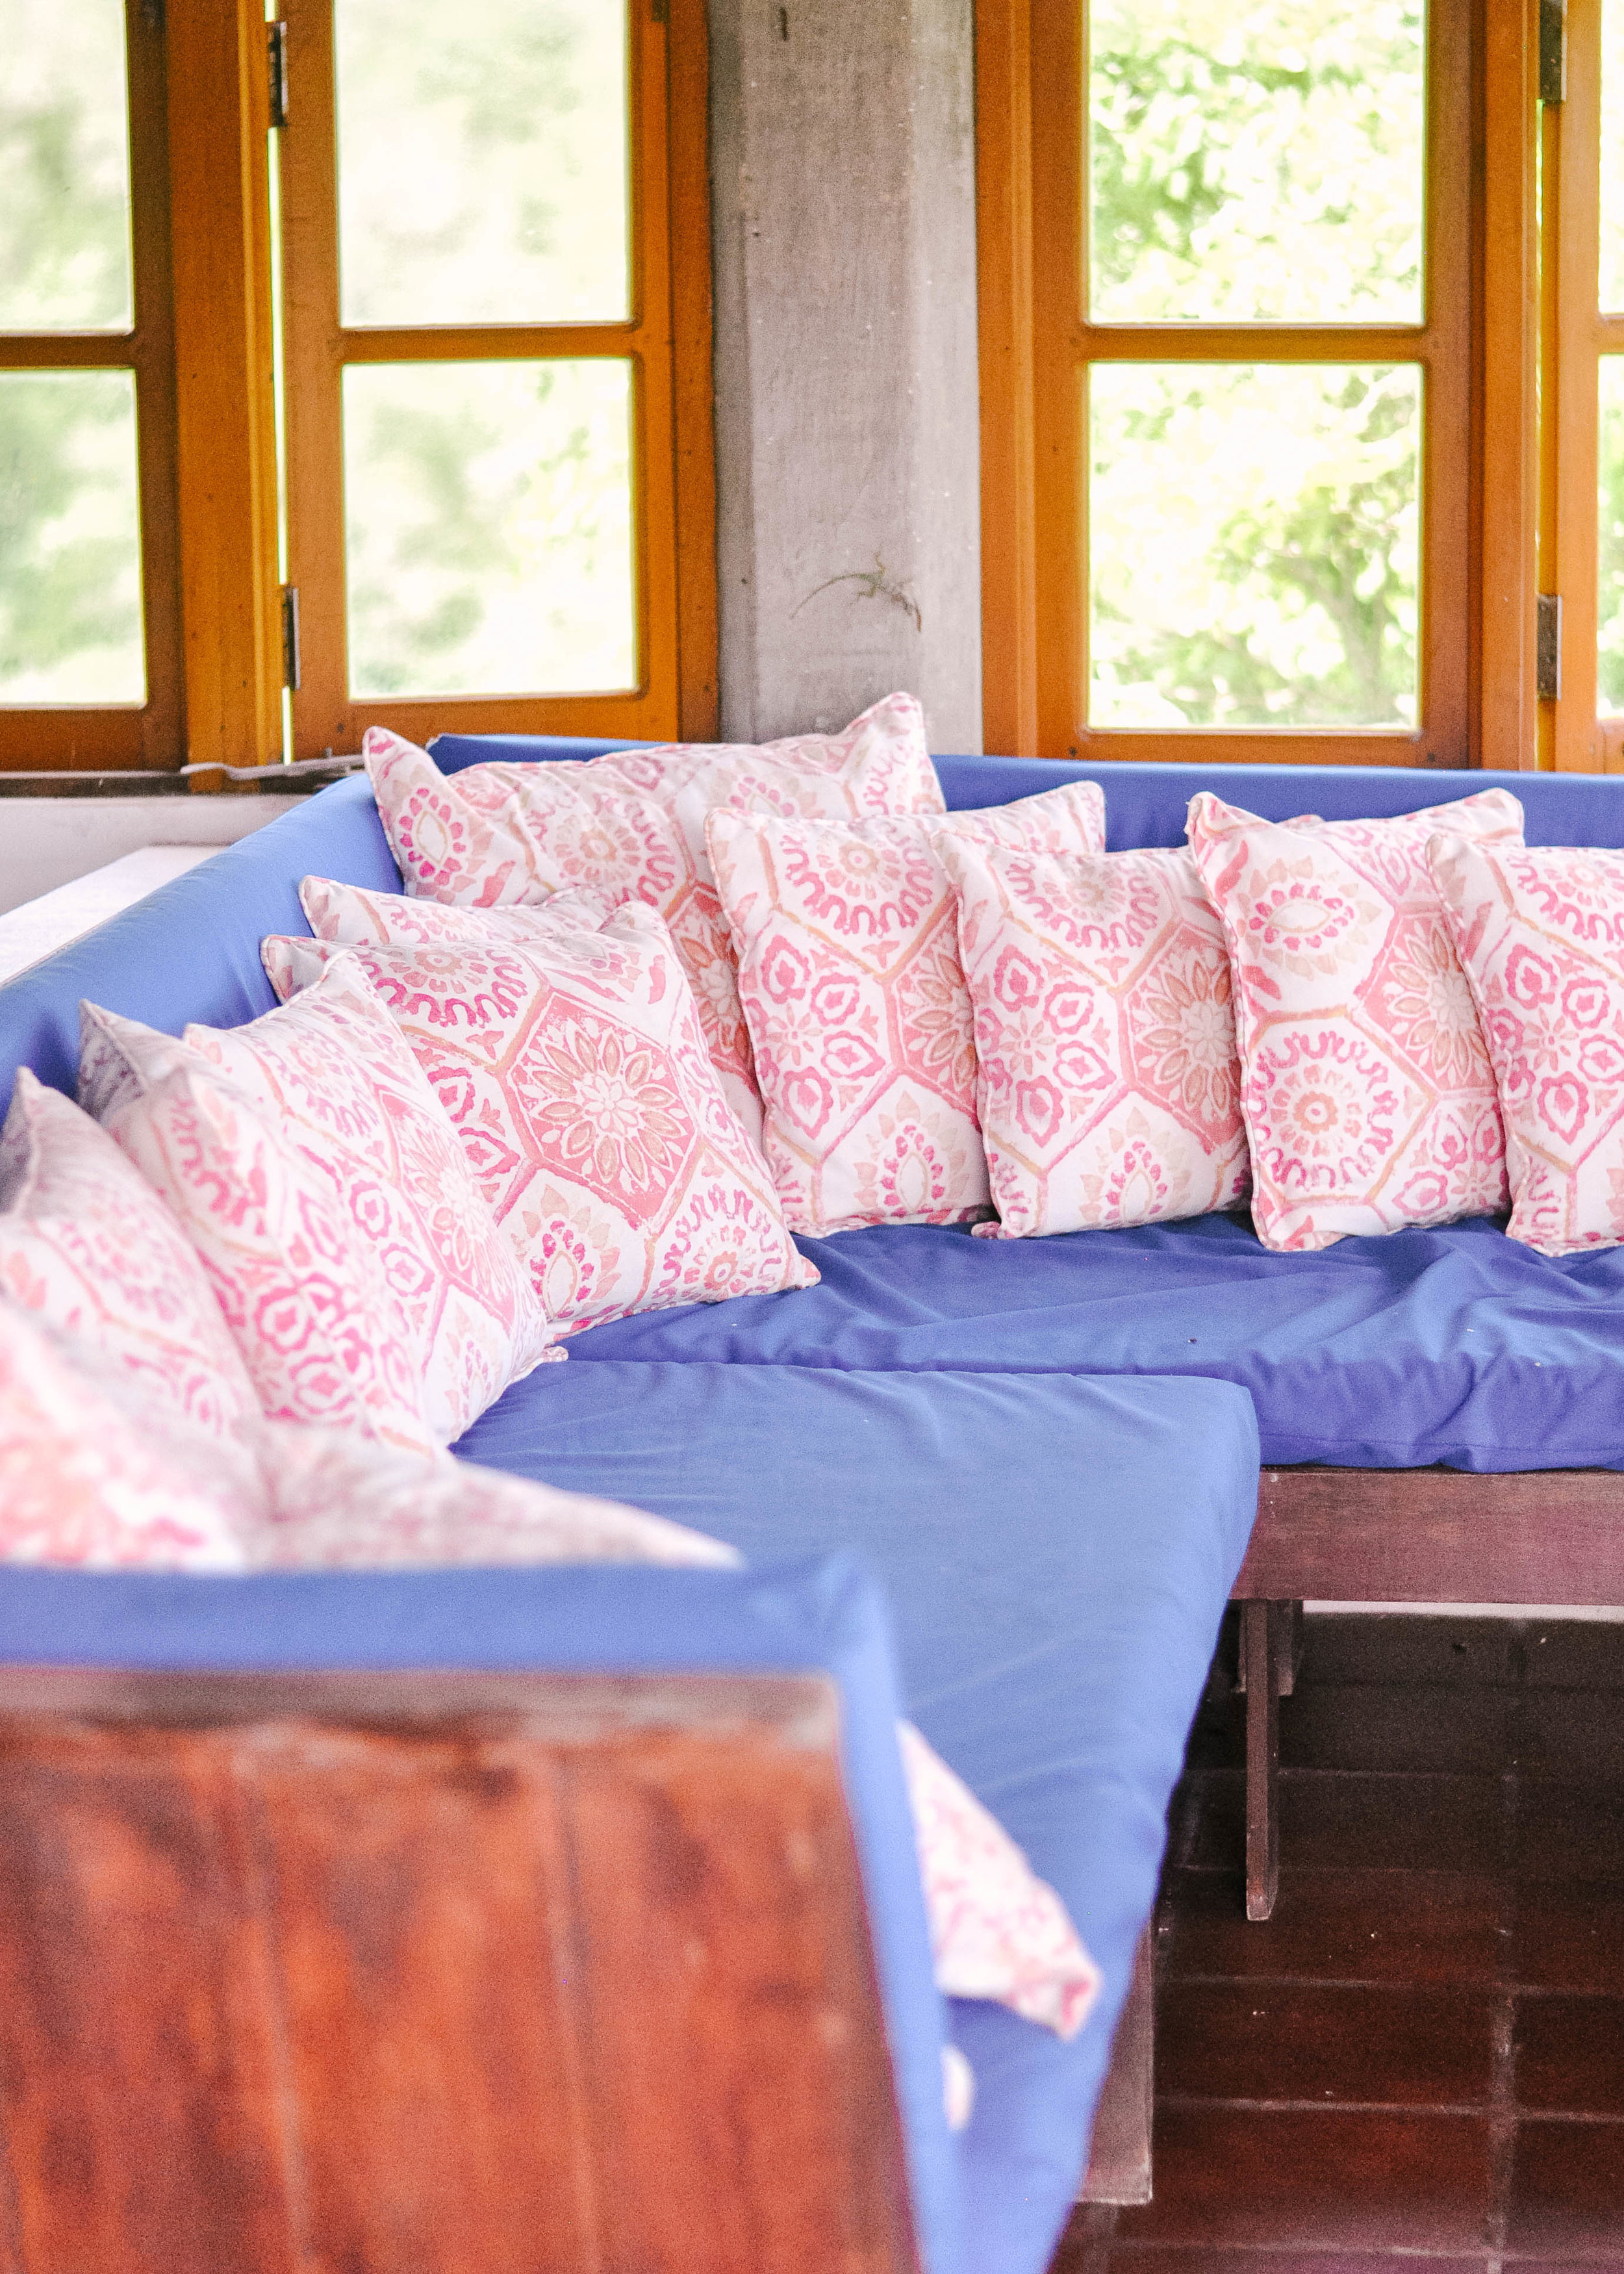 Pillows on blue cushion couch